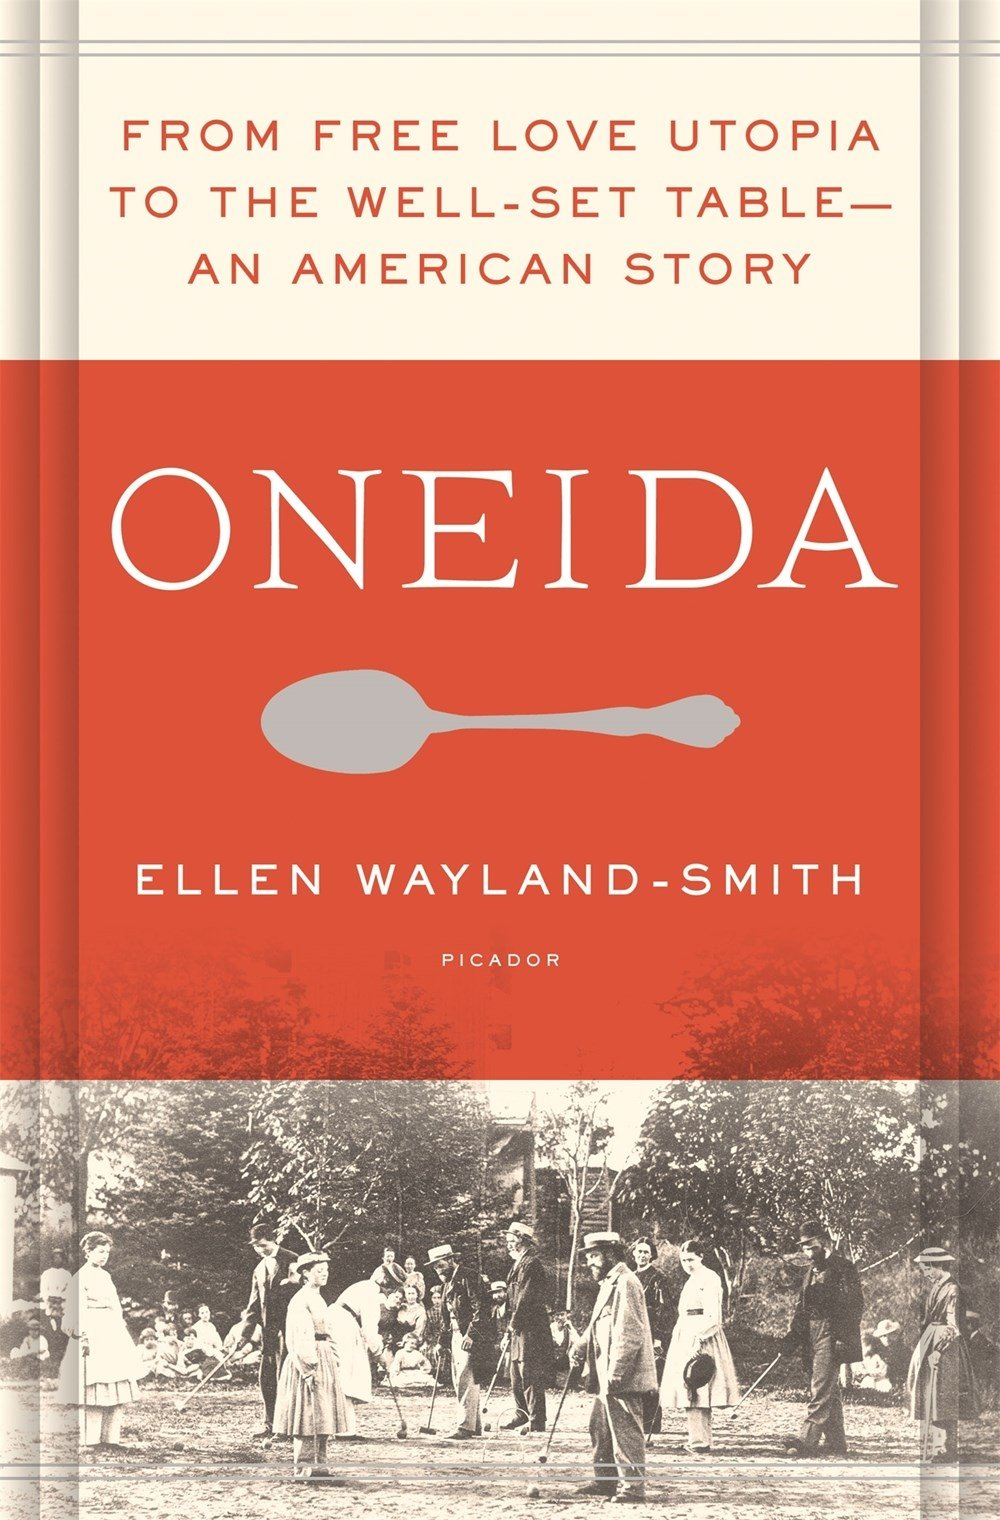 Oneida: From Free Love Utopia to the Well-Set Table pdf